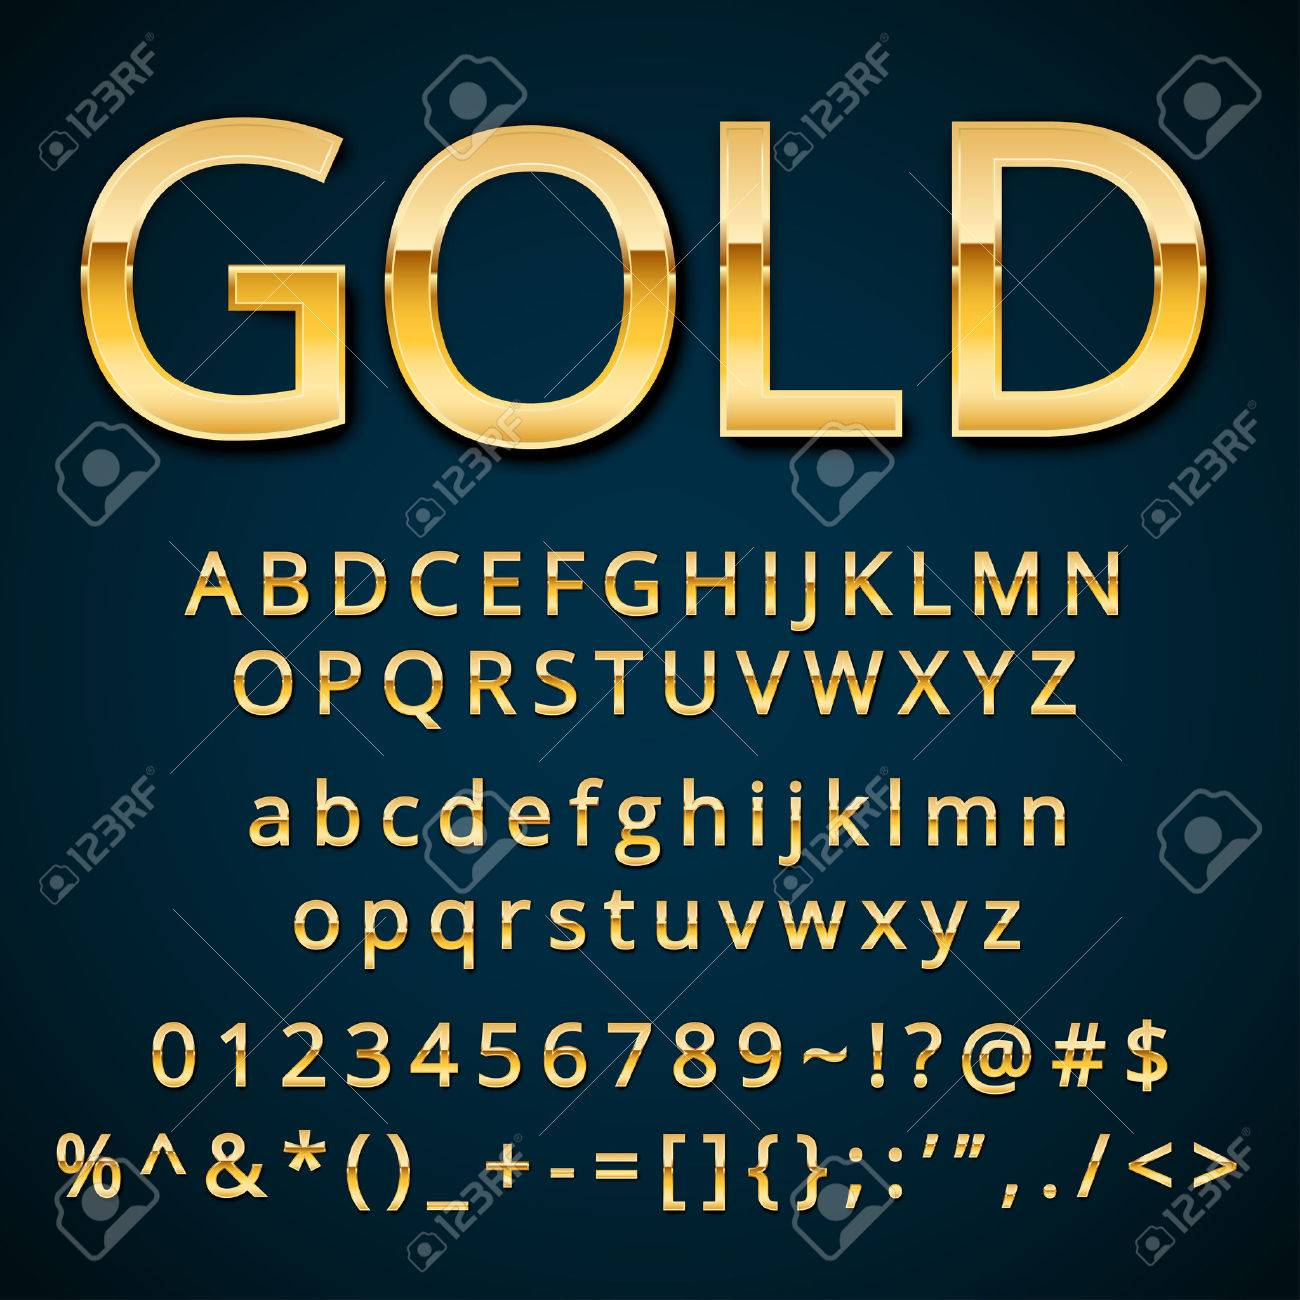 Gold Letter Alphabetic Fonts With Numbers And Symbols Royalty Free